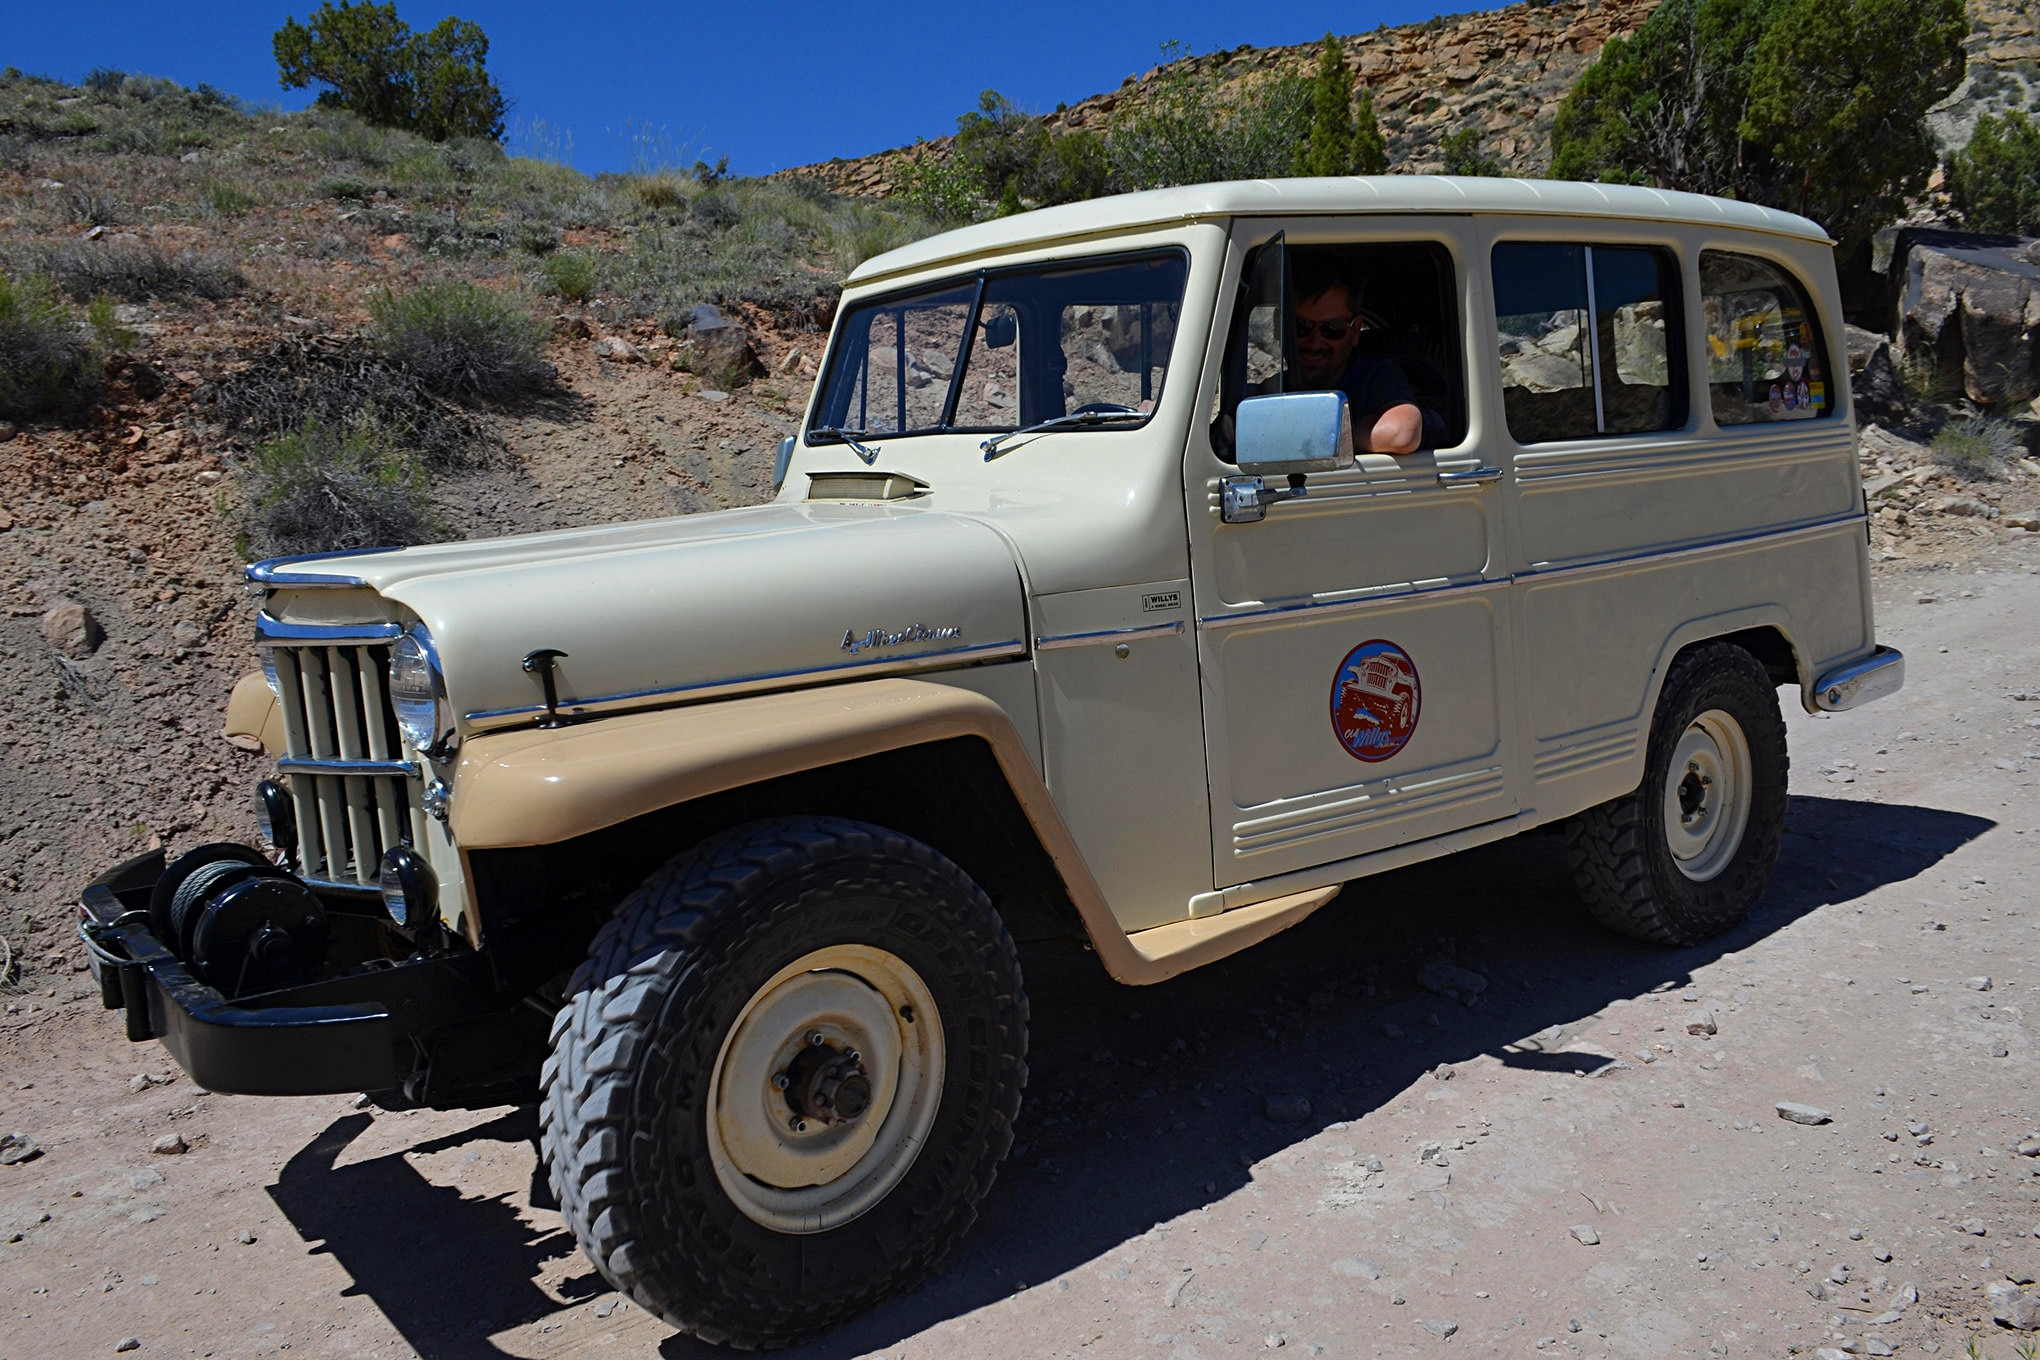 047 willys rally moab 2018 gallery.JPG